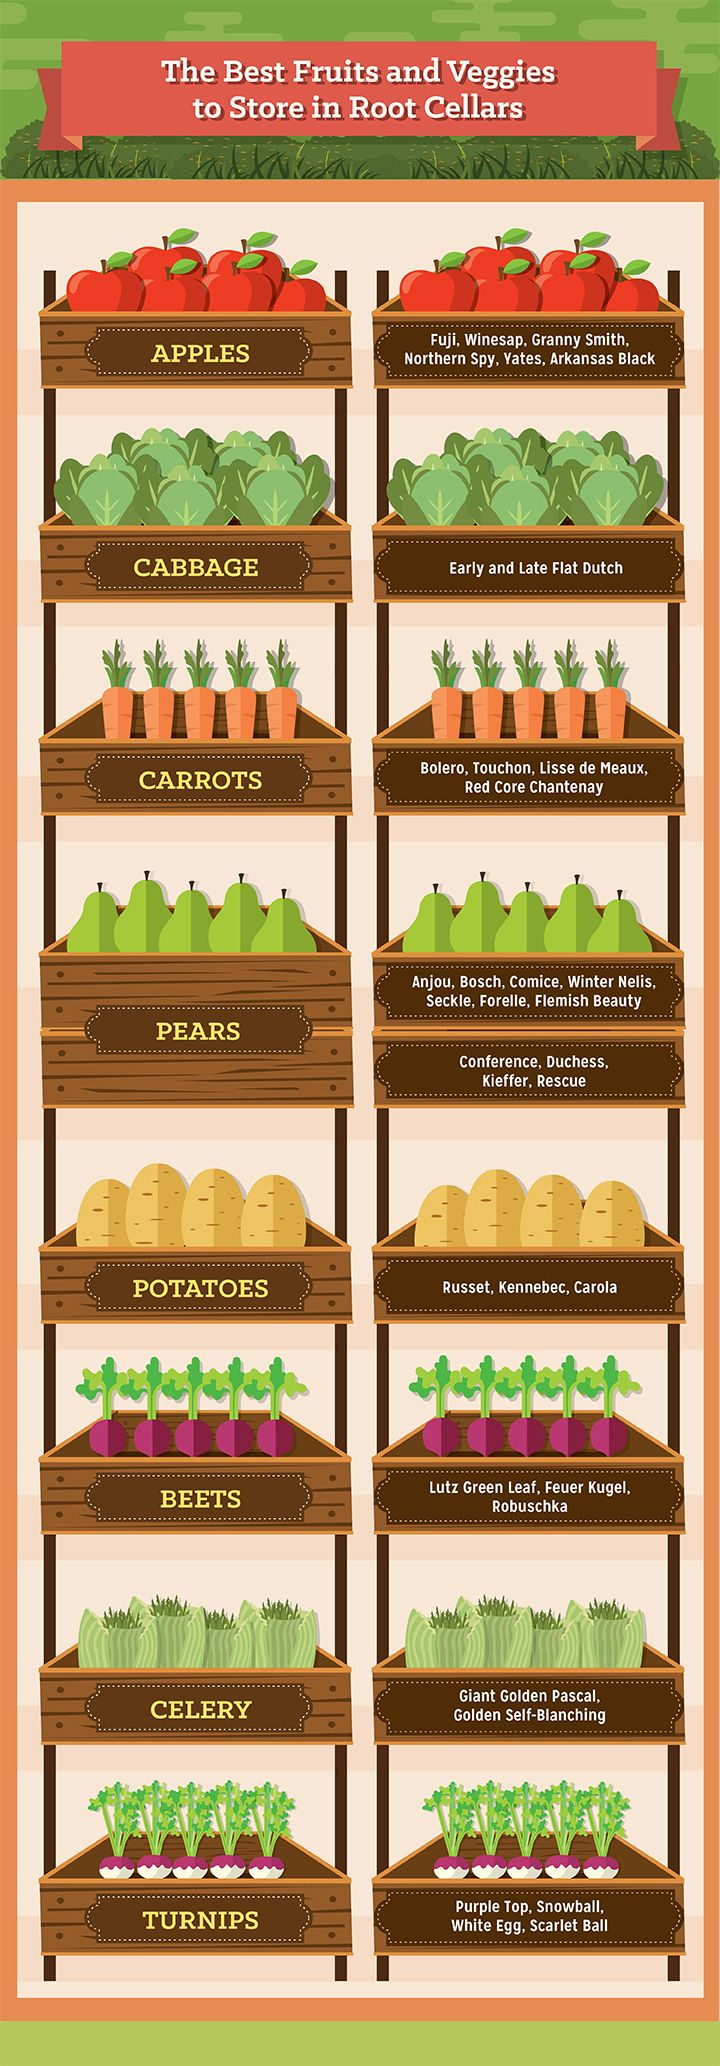 Thinking of building a root cellar? These are some of the best fruits and vegetables you can store in one.  Also has a cool guide to building a simple one with a trash can!